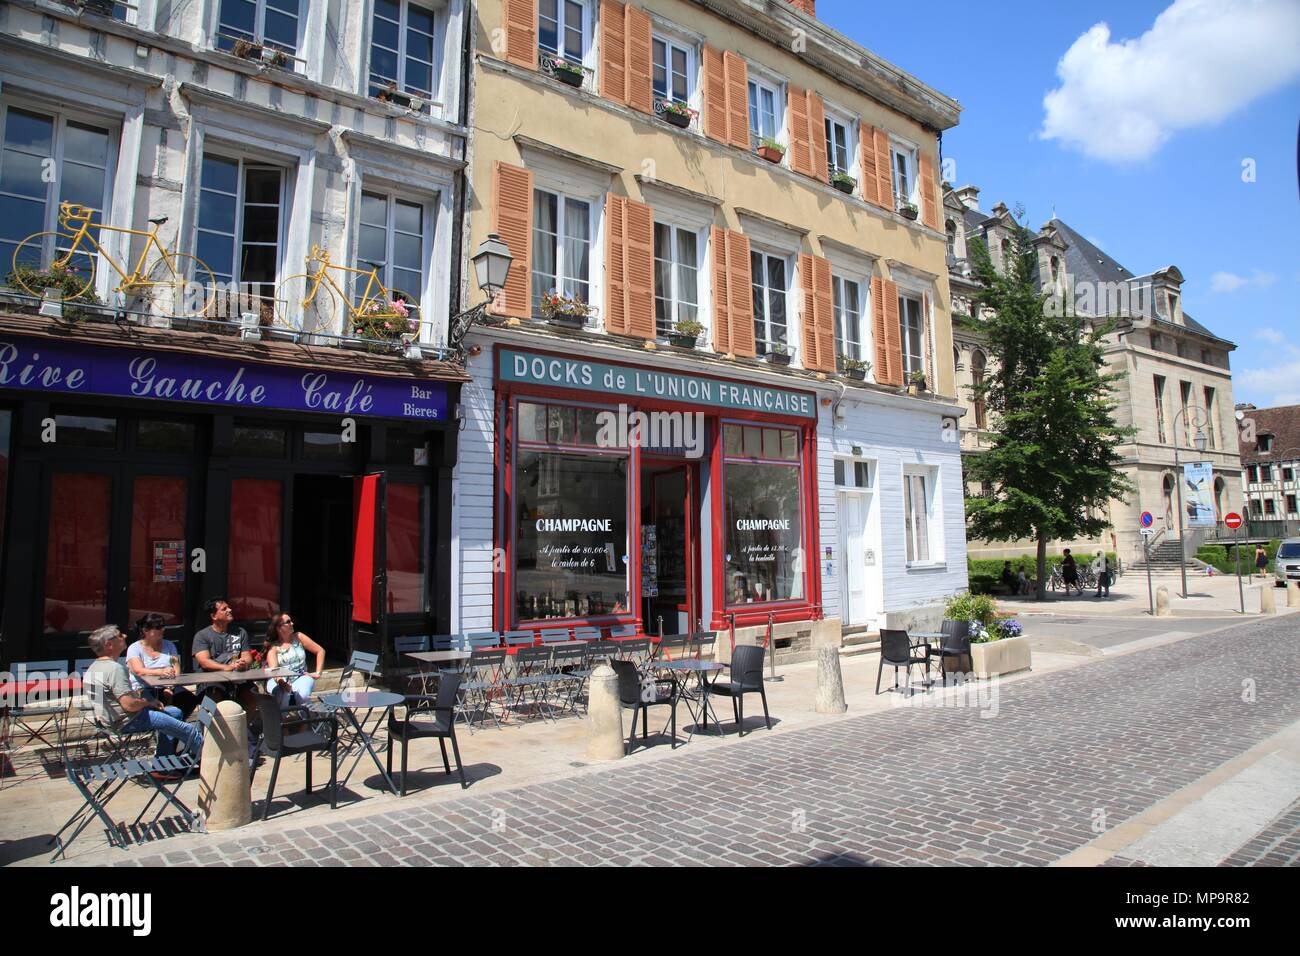 Restaurant Rive Gauche Cafe Troyes